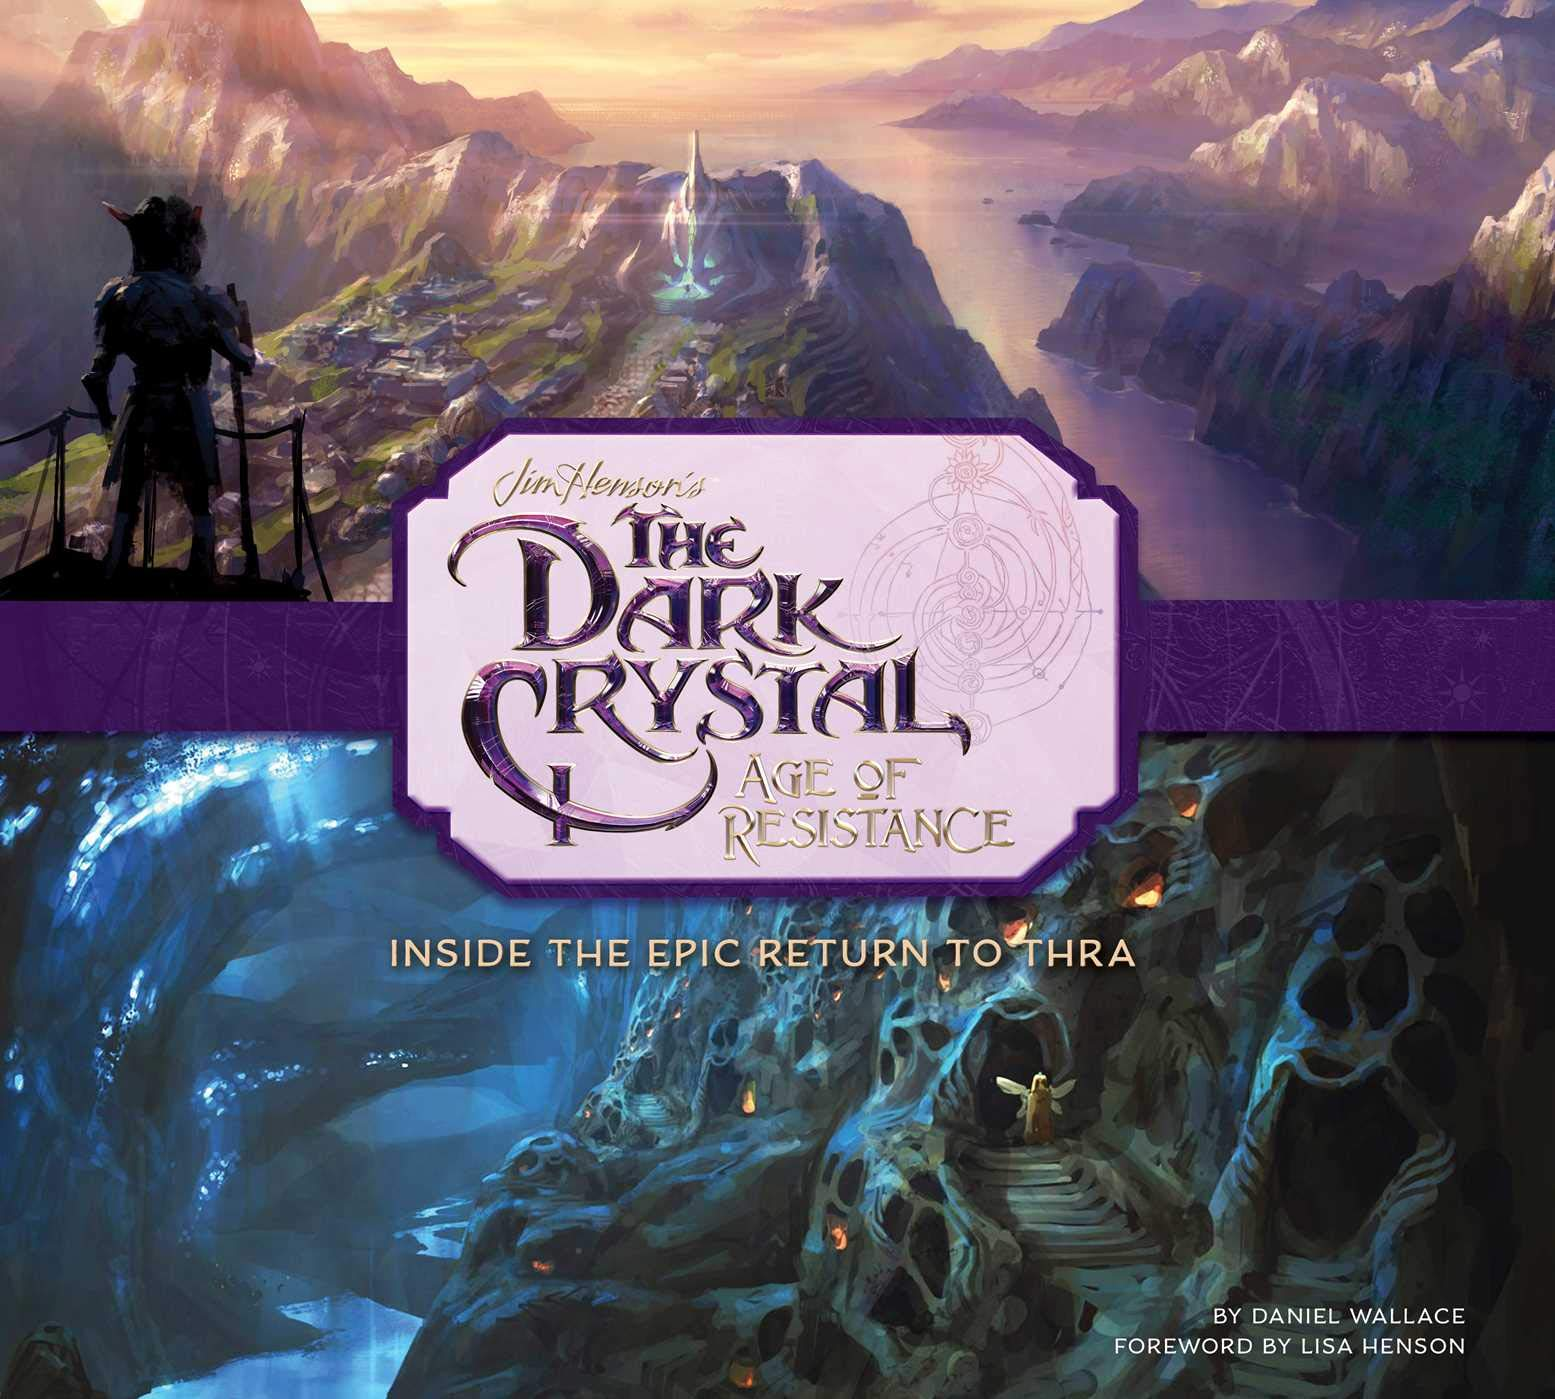 The Dark Crystal: Age of Resistance: Inside the Epic Return to Thra by Insight Editions